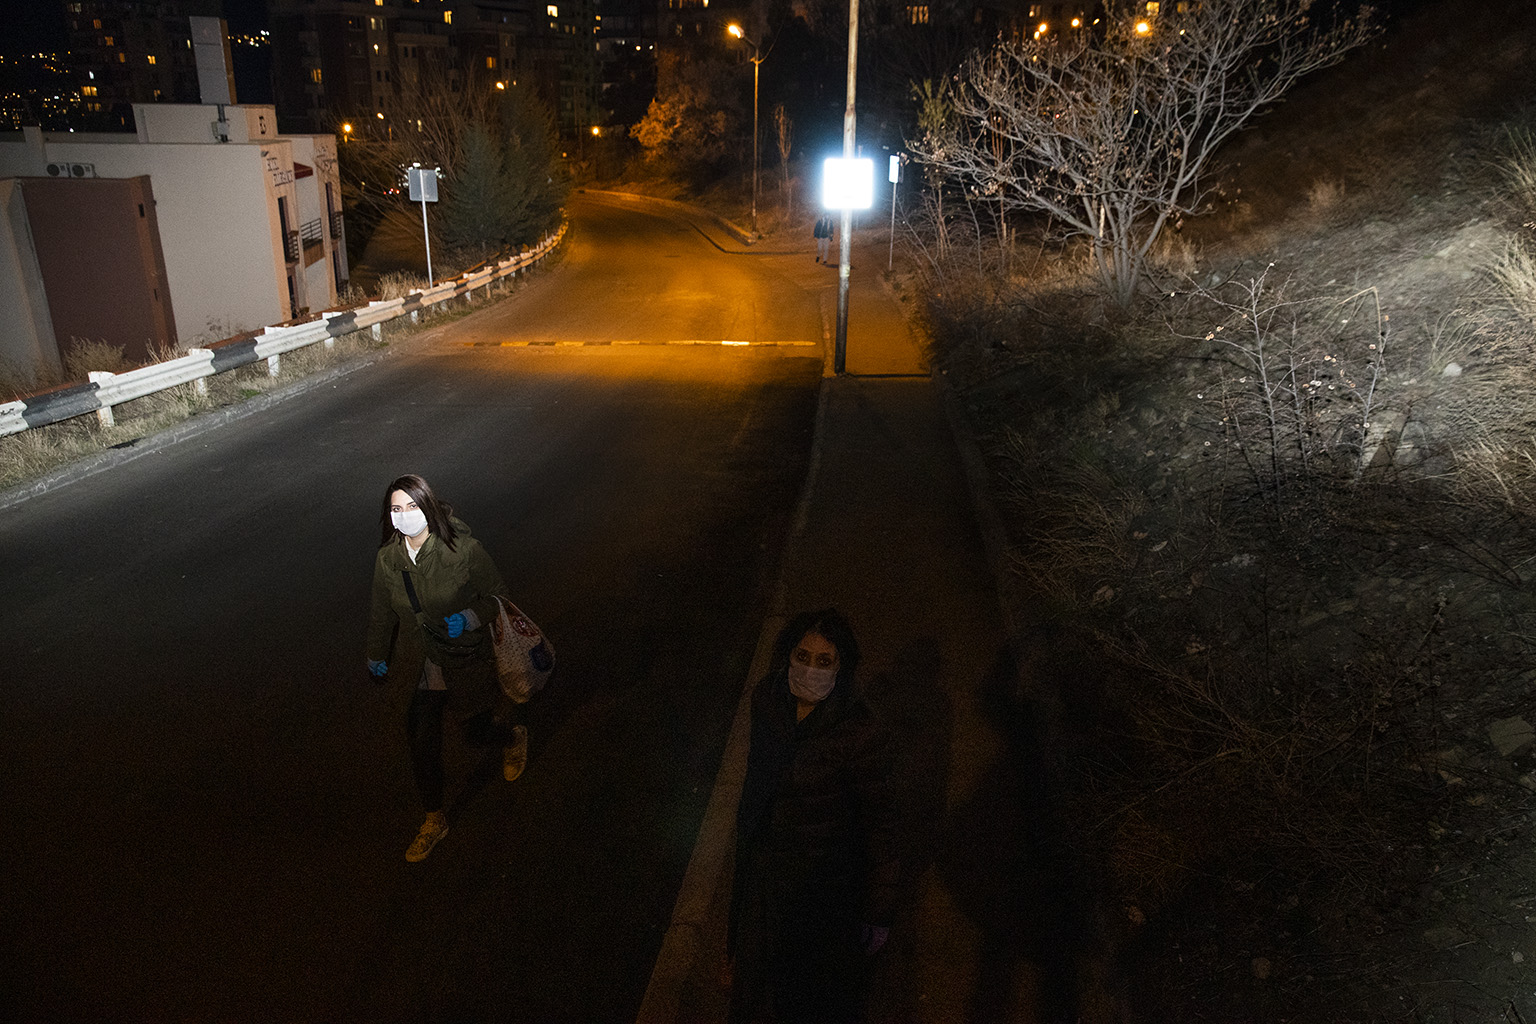 I drove outside at night to photograph during the quarantine. It was 10 p.m. but felt like 5 a.m. The streets were empty and people with face masks appeared and disappeared in empty streets.